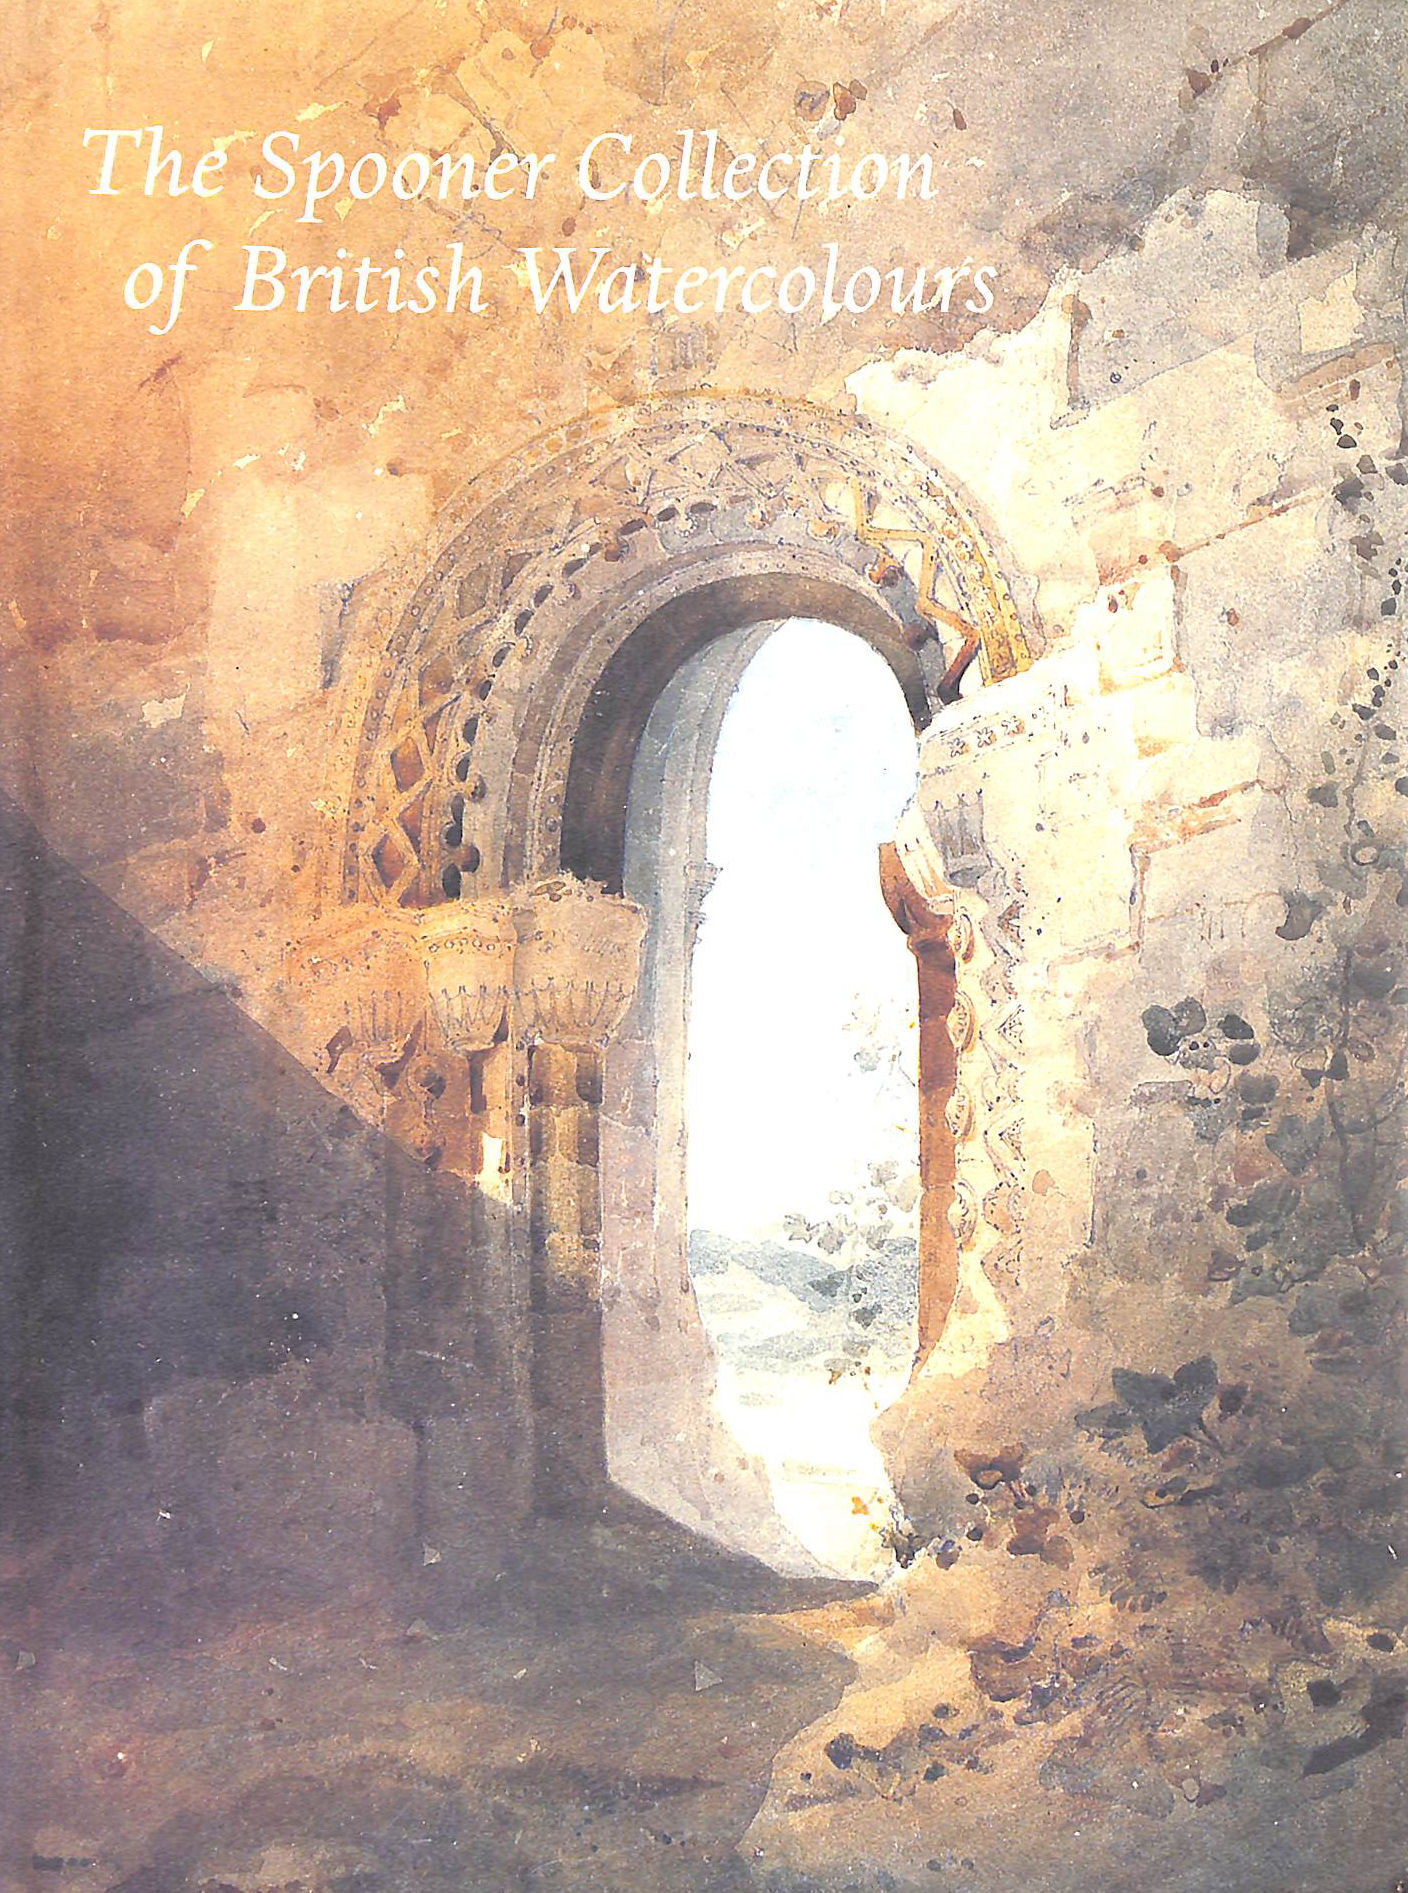 Image for The Spooner Collection of British Watercolours at the Courtauld Institute Gallery